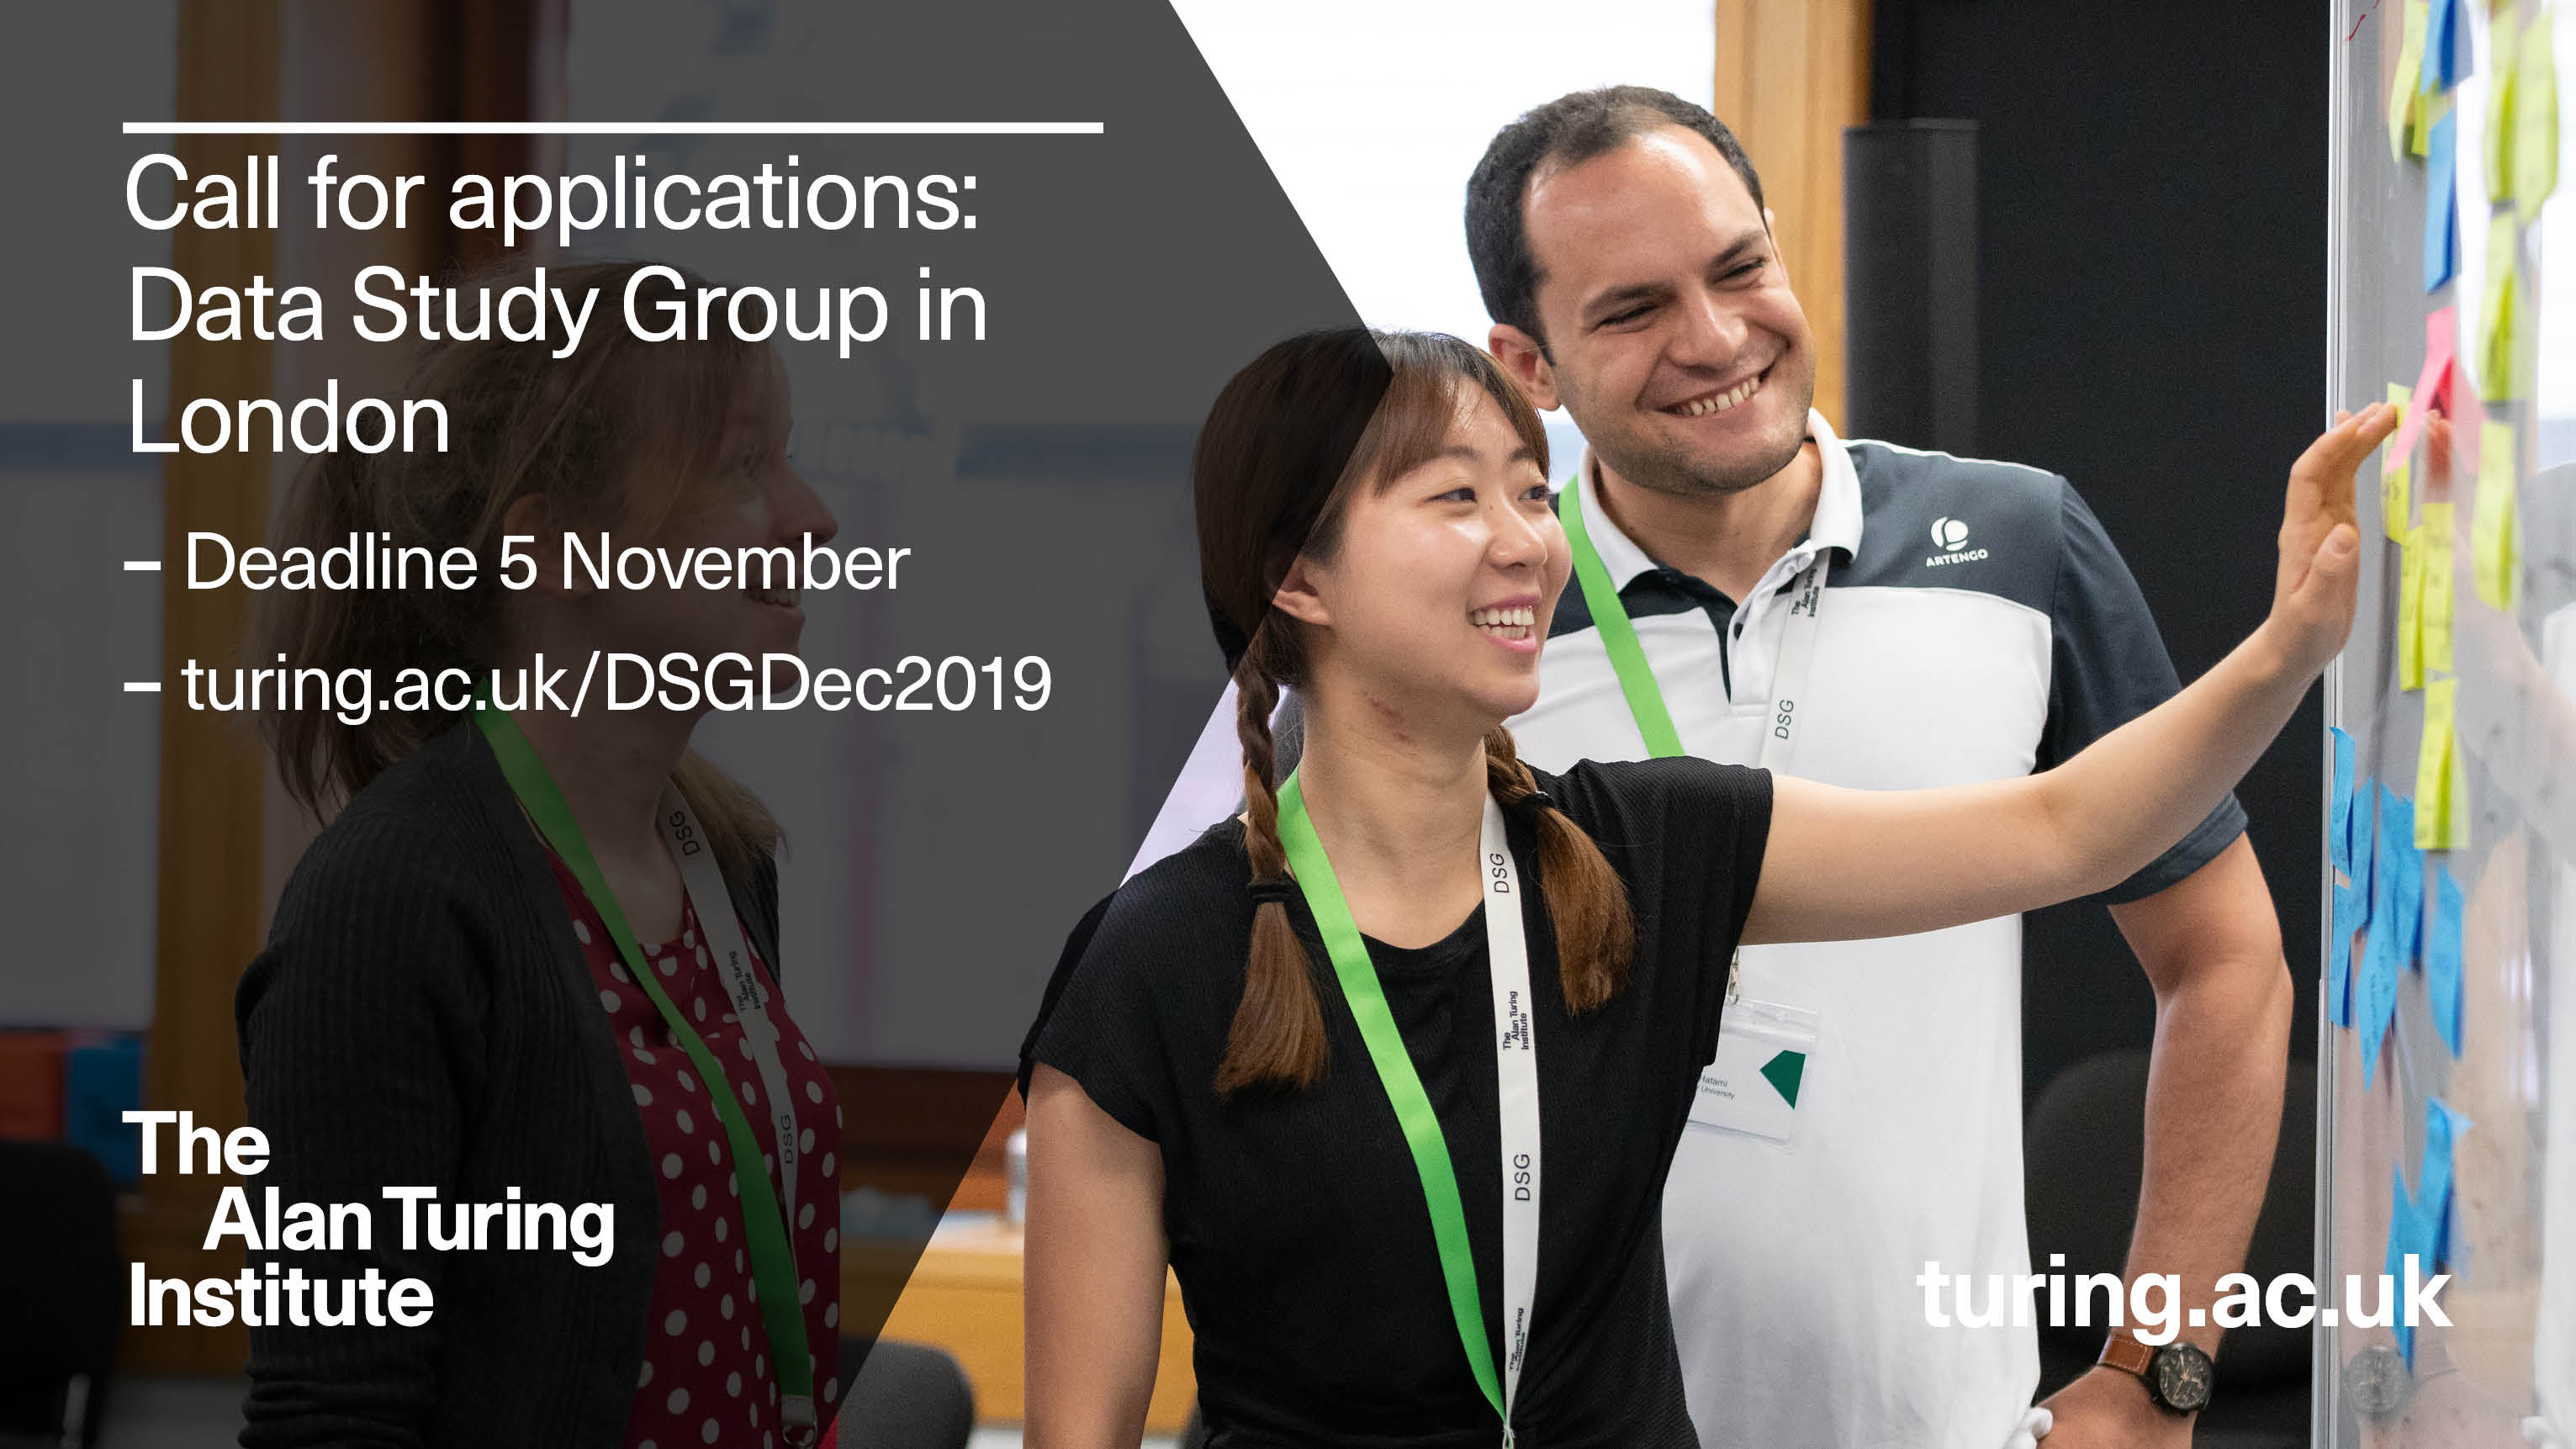 Turing Institute Data Study Group call for applications advert December 2019